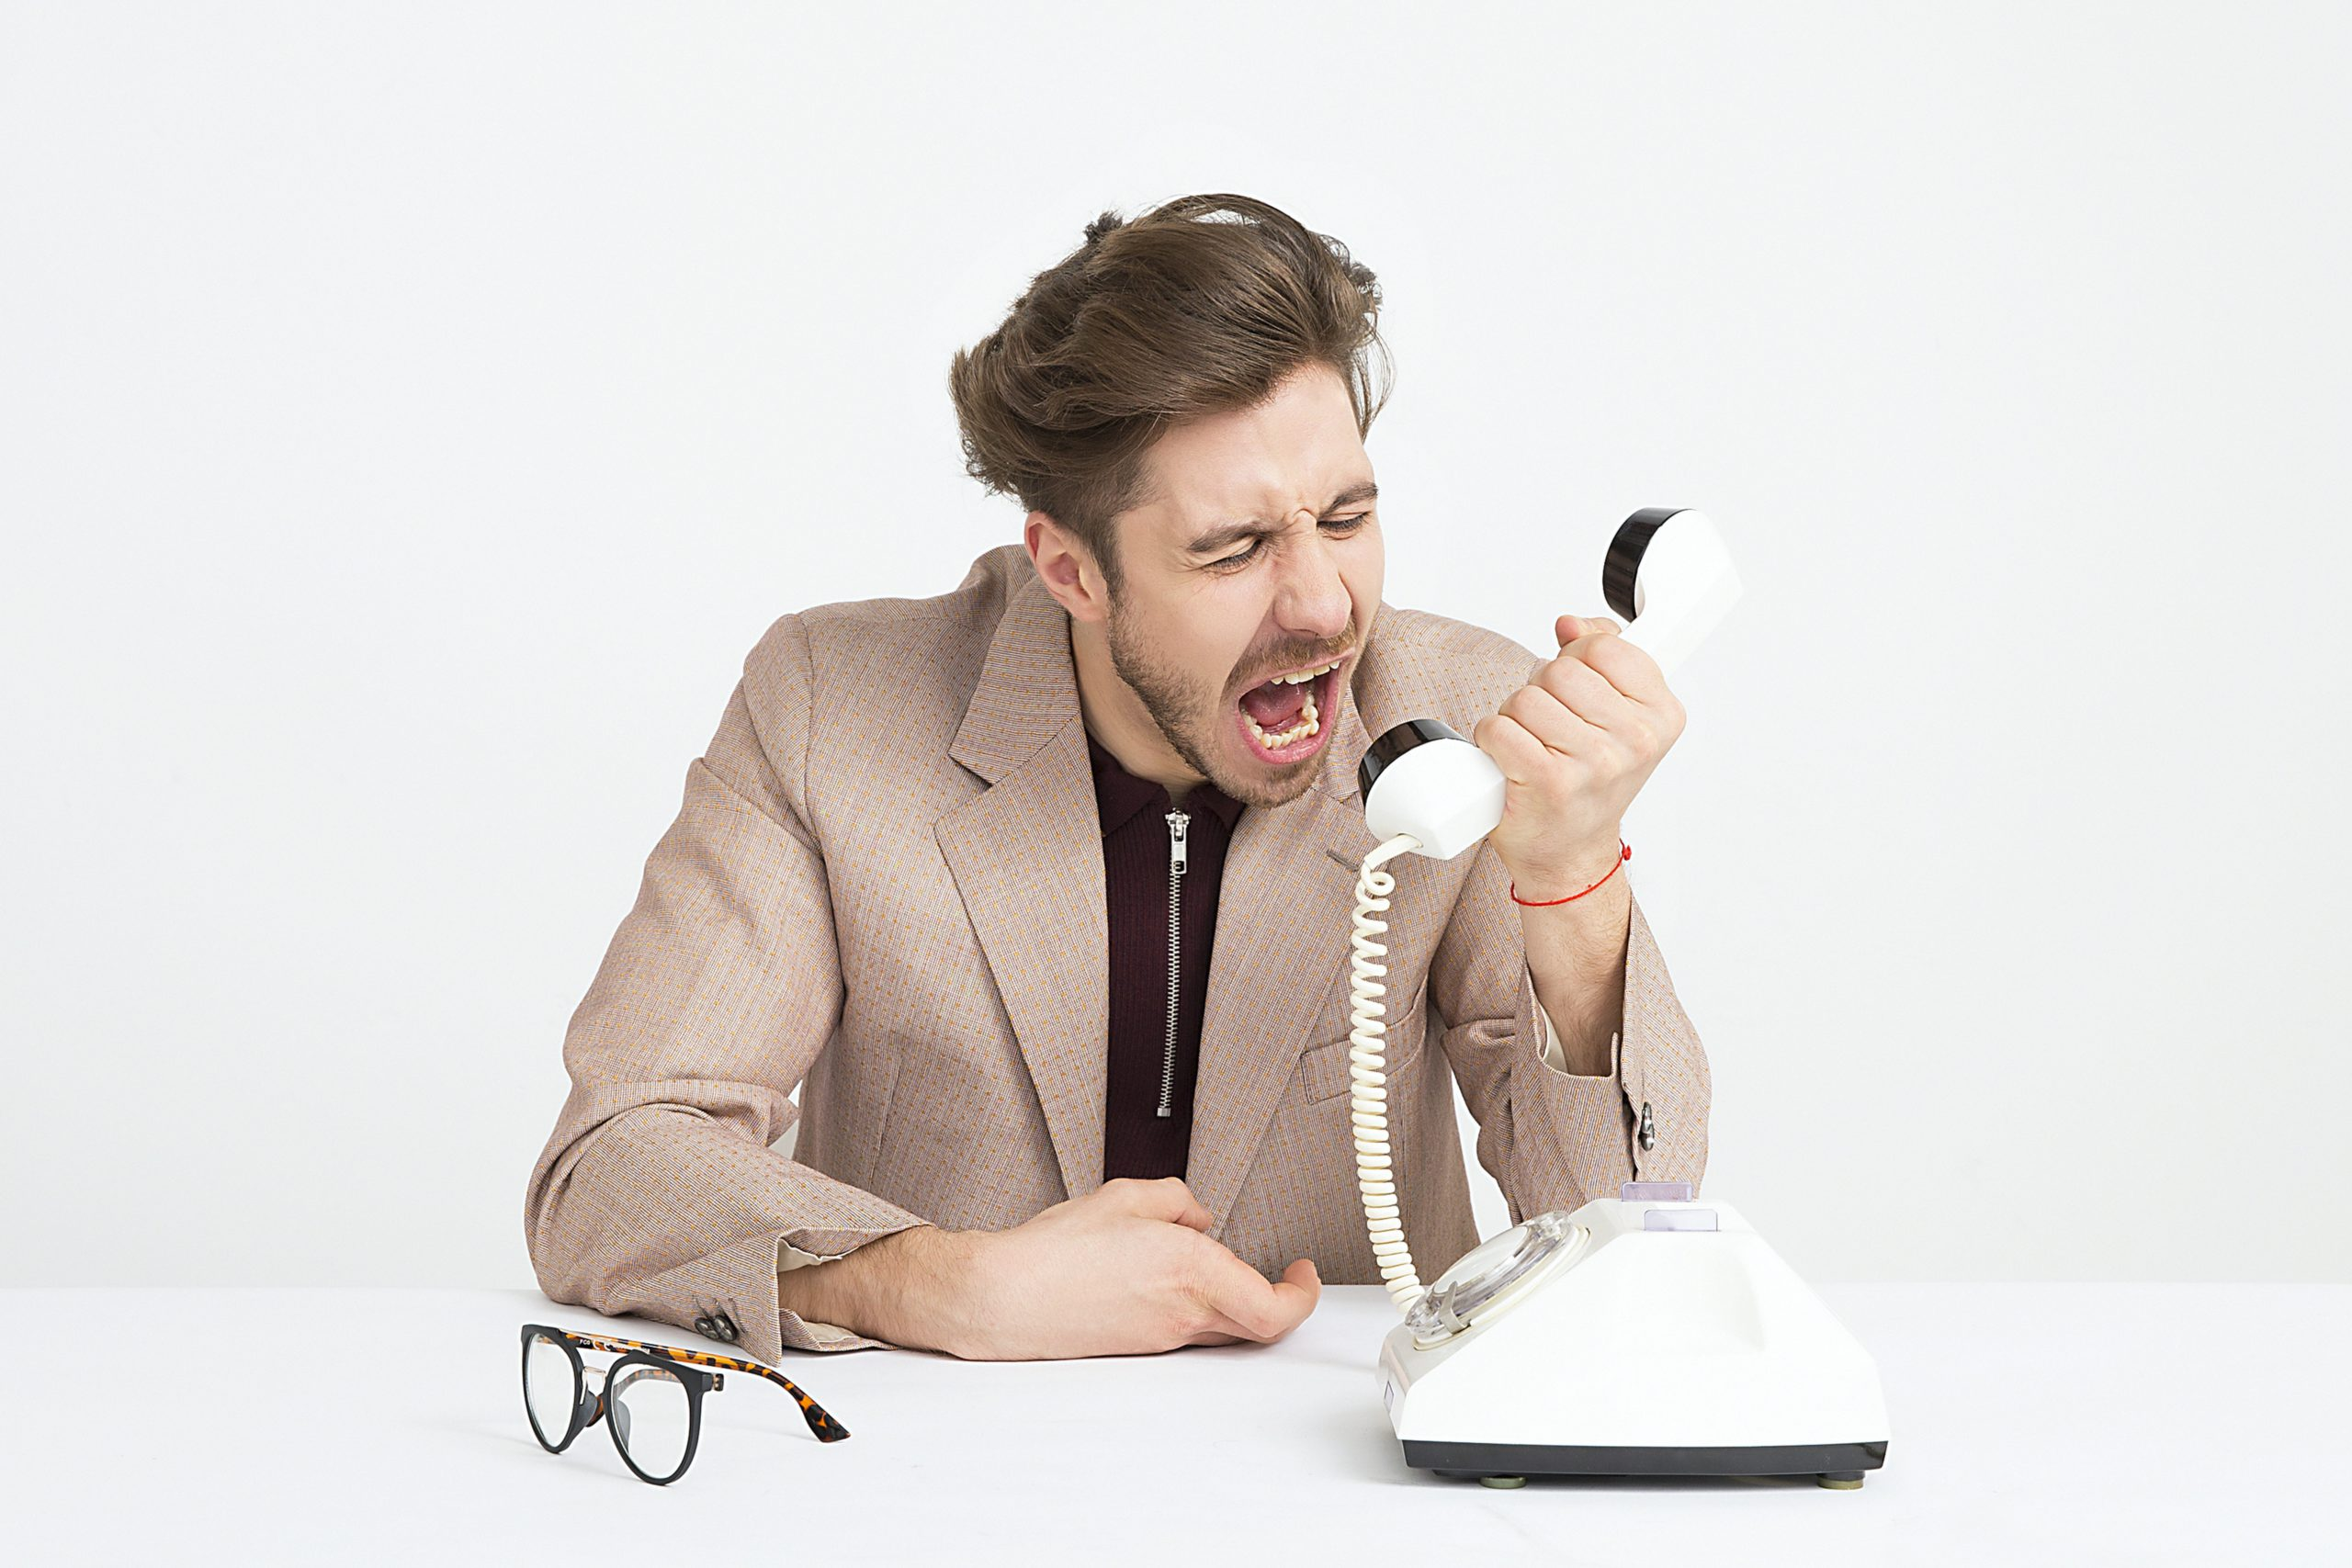 angry man on phone, white background, white phone, eyeglasses on the desk